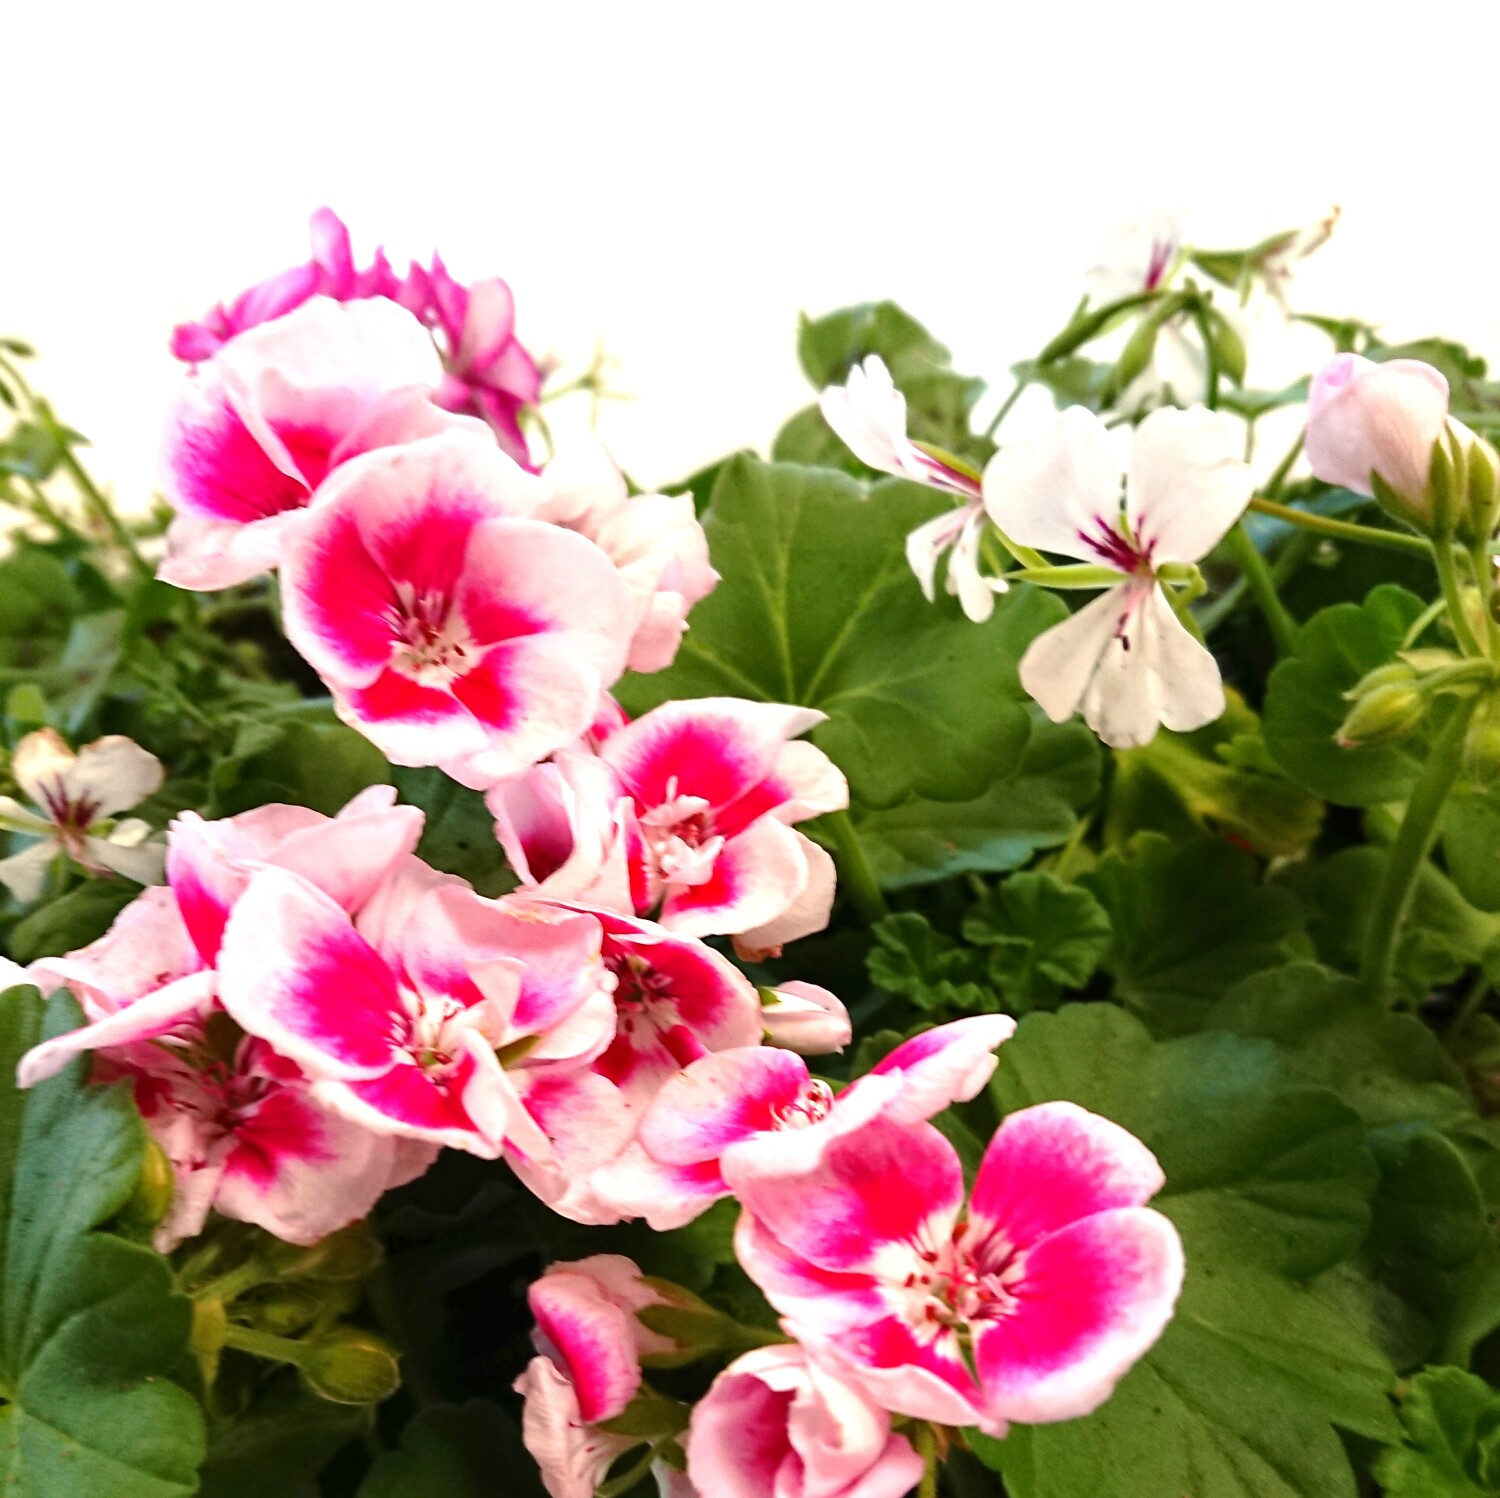 Geranium of de Pelargonium is een ideale plant voor in bloembakken.